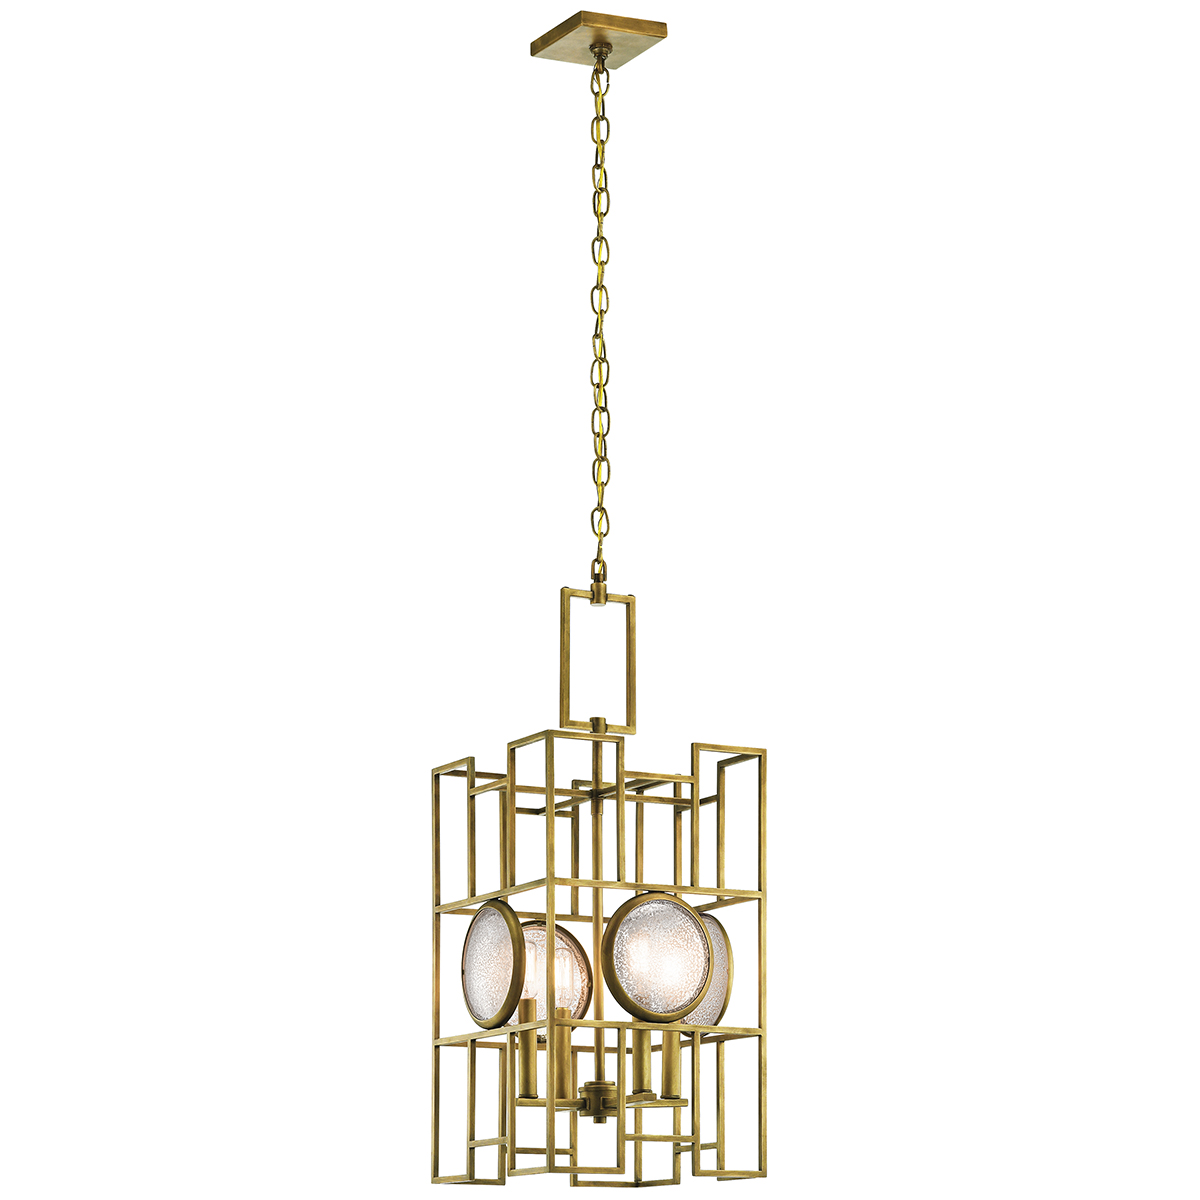 Primary image for Kichler 43933NBR Vance Pendants 13in Brass Tones STEEL 4-light